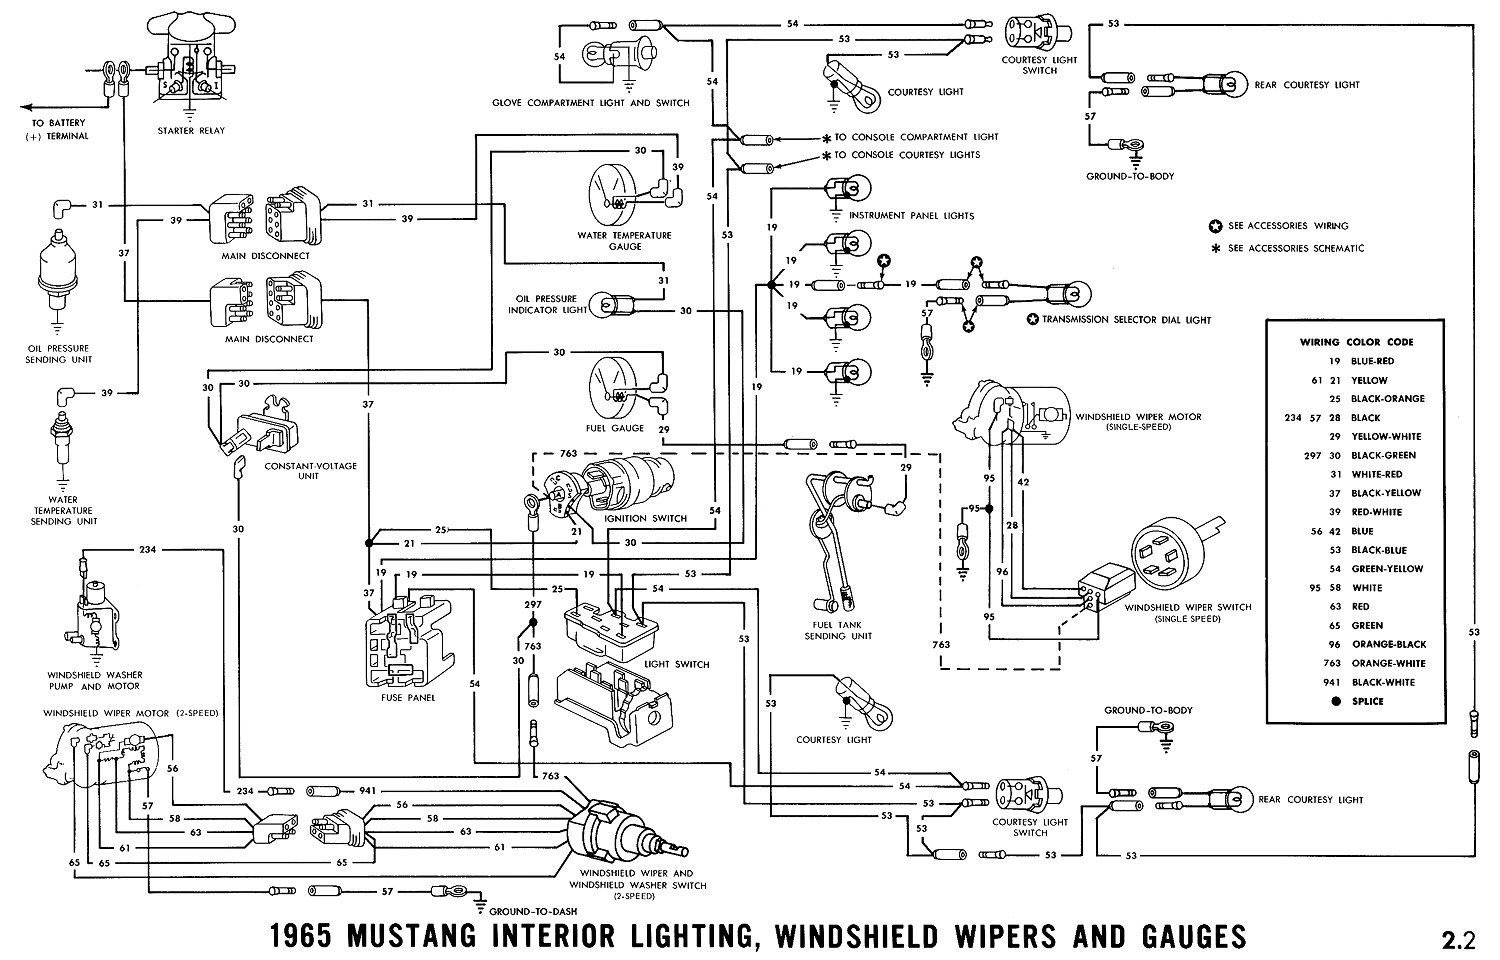 1965g 1965 mustang wiring diagrams average joe restoration 1968 mustang instrument cluster wiring diagram at readyjetset.co